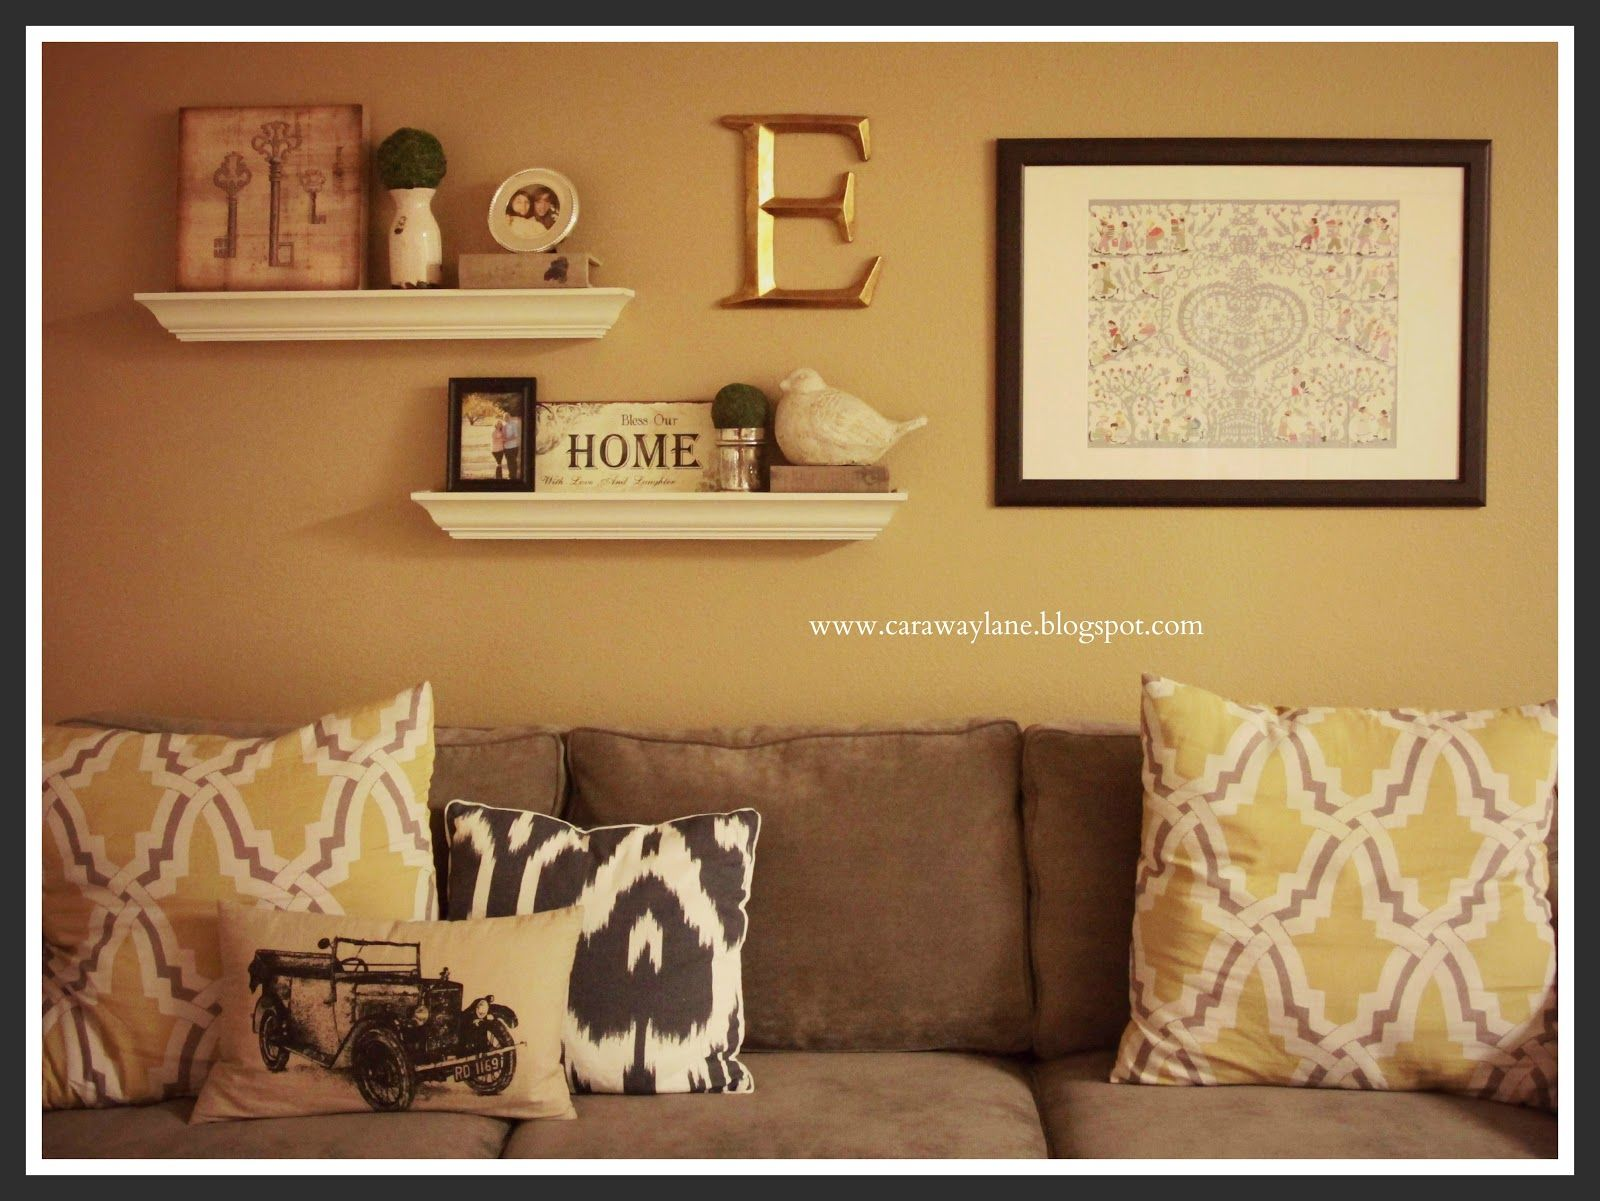 Wall Decor For Over Couch : Decorate over a sofa above the couch wall decor future